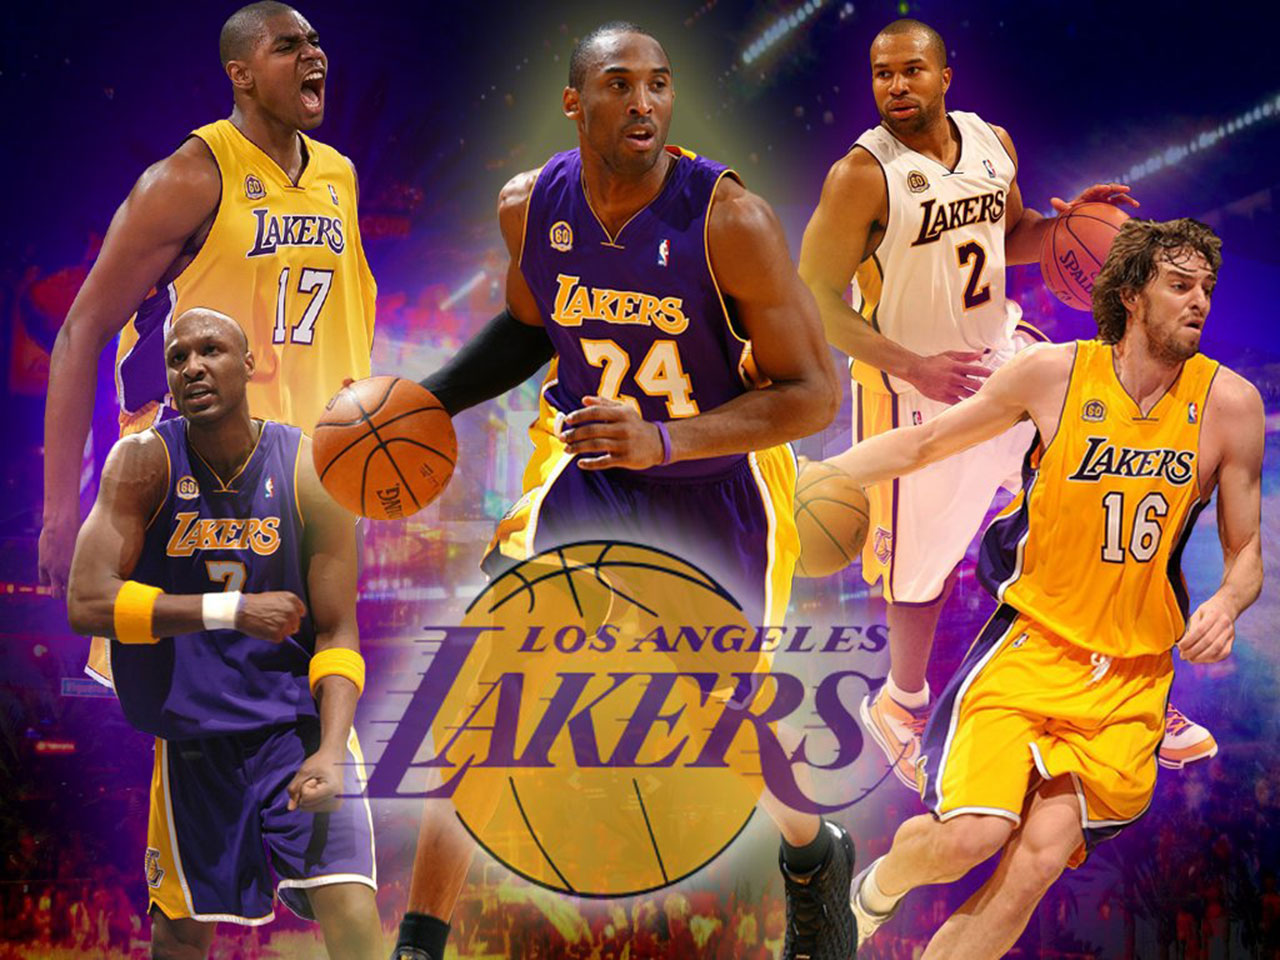 Don T Miss Exciting Games From The Lakers During October